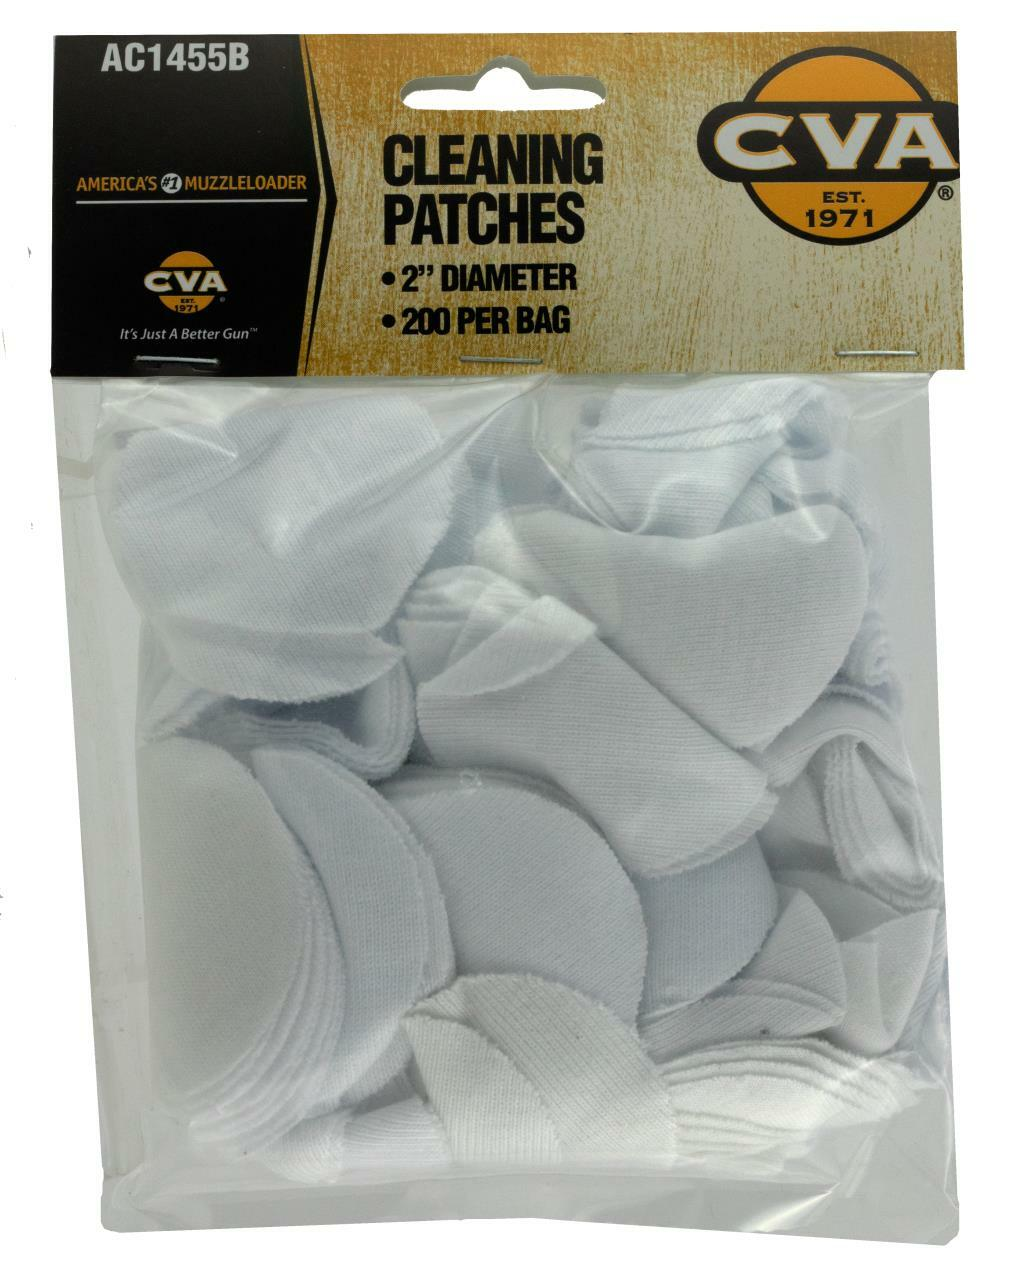 CVA Cleaning Patches 2